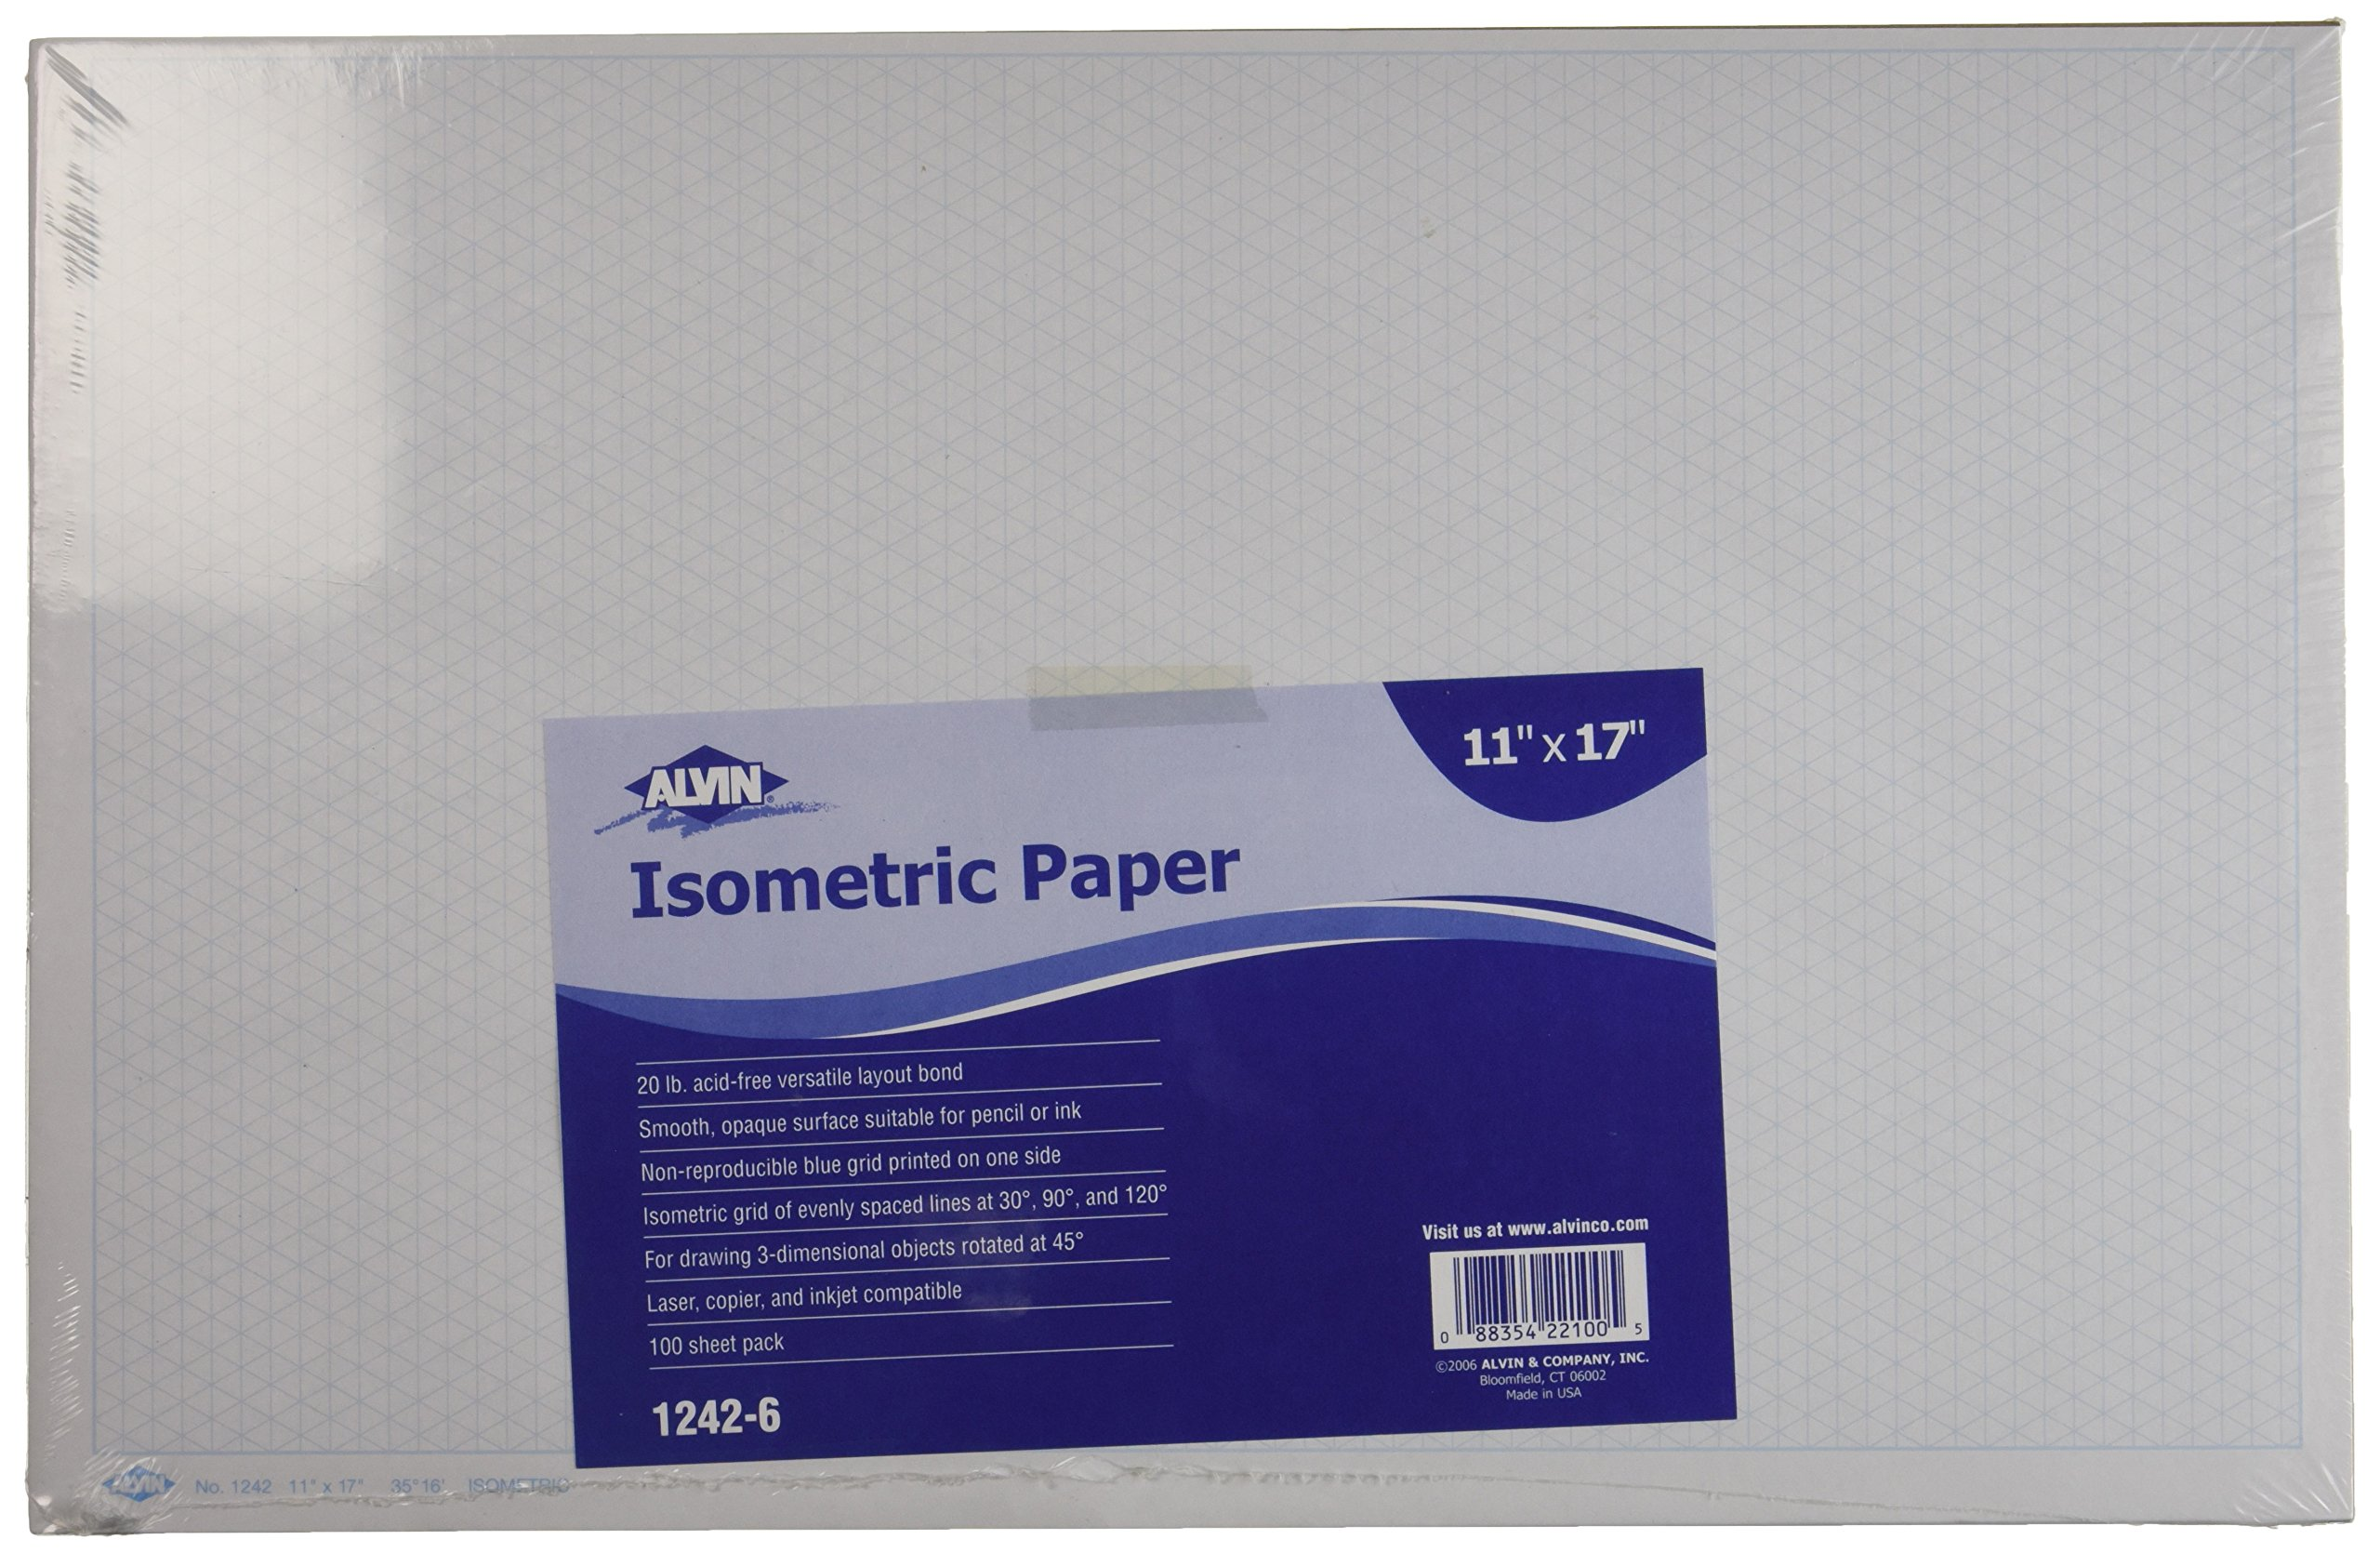 Alvin, Isometric Graph Paper, 100-Sheet Pack 11 inches x 17 inches by Alvin